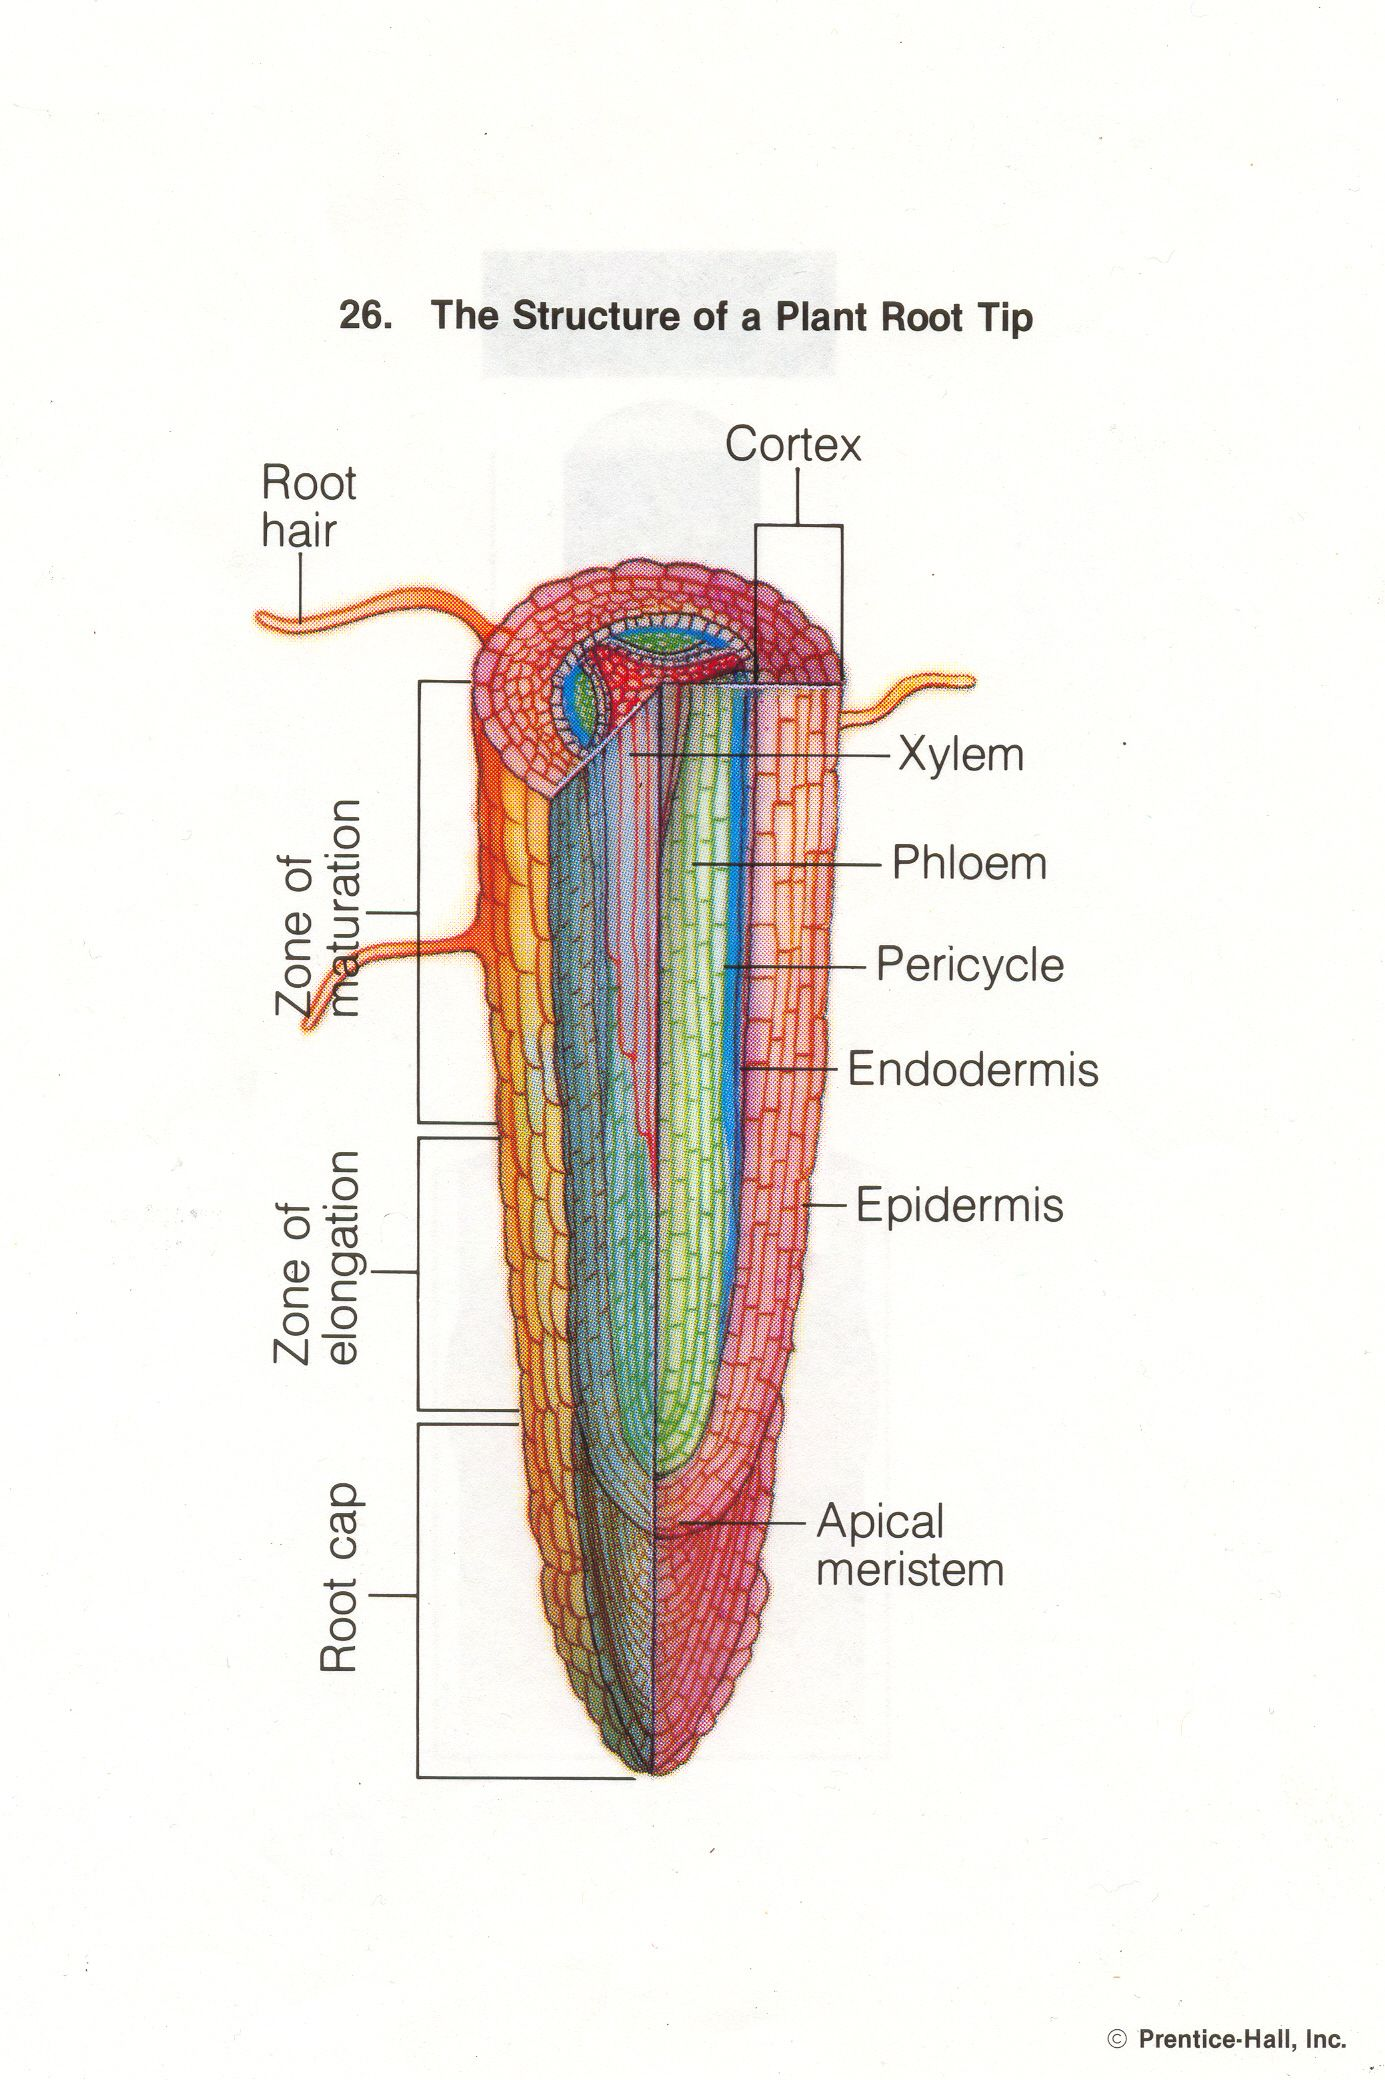 Httpthomsonstersciencebiologyunit protistsfungiplants26 httpthomsonstersciencebiologyunit protistsfungiplants26 plantroottipg bot pinterest botany cell structure and plant cell structure ccuart Choice Image